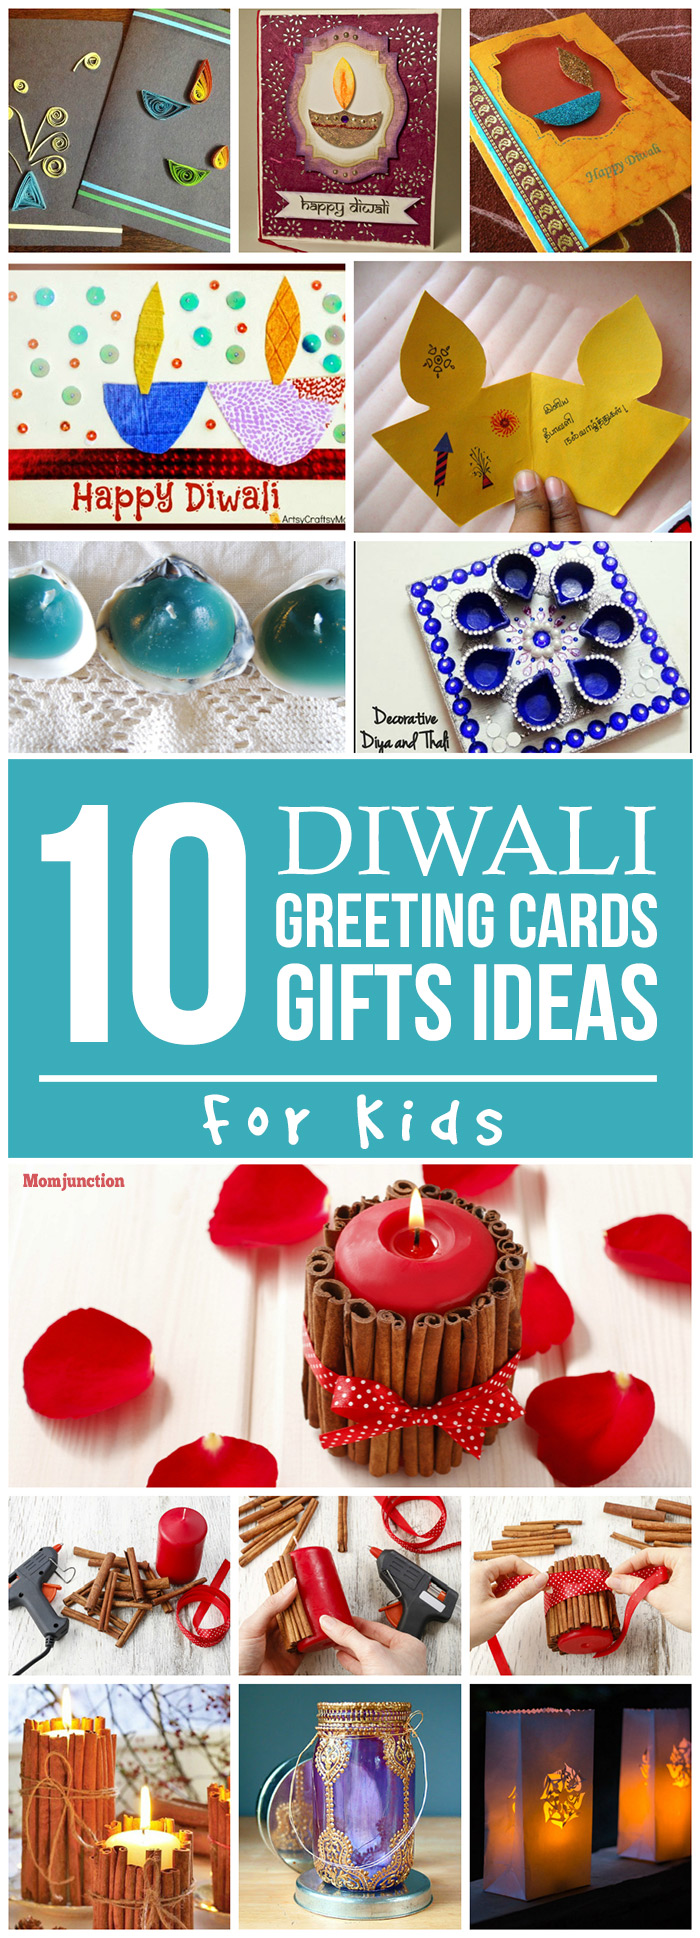 Top 10 Diwali Greeting Cards And Gifts For Kids